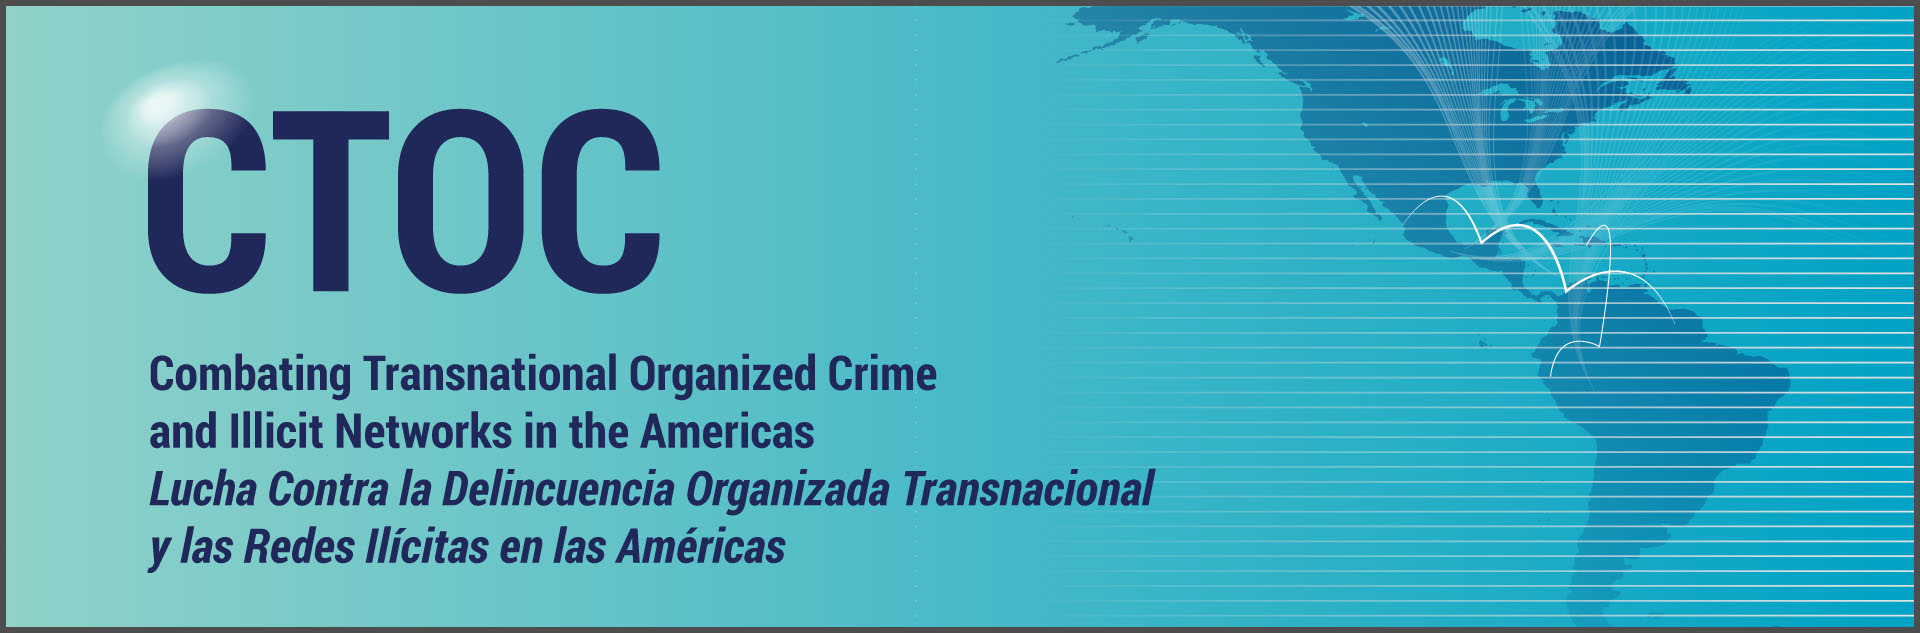 Combating Transnational Organized Crime and Illicit Networks in the Americas (CTOC)